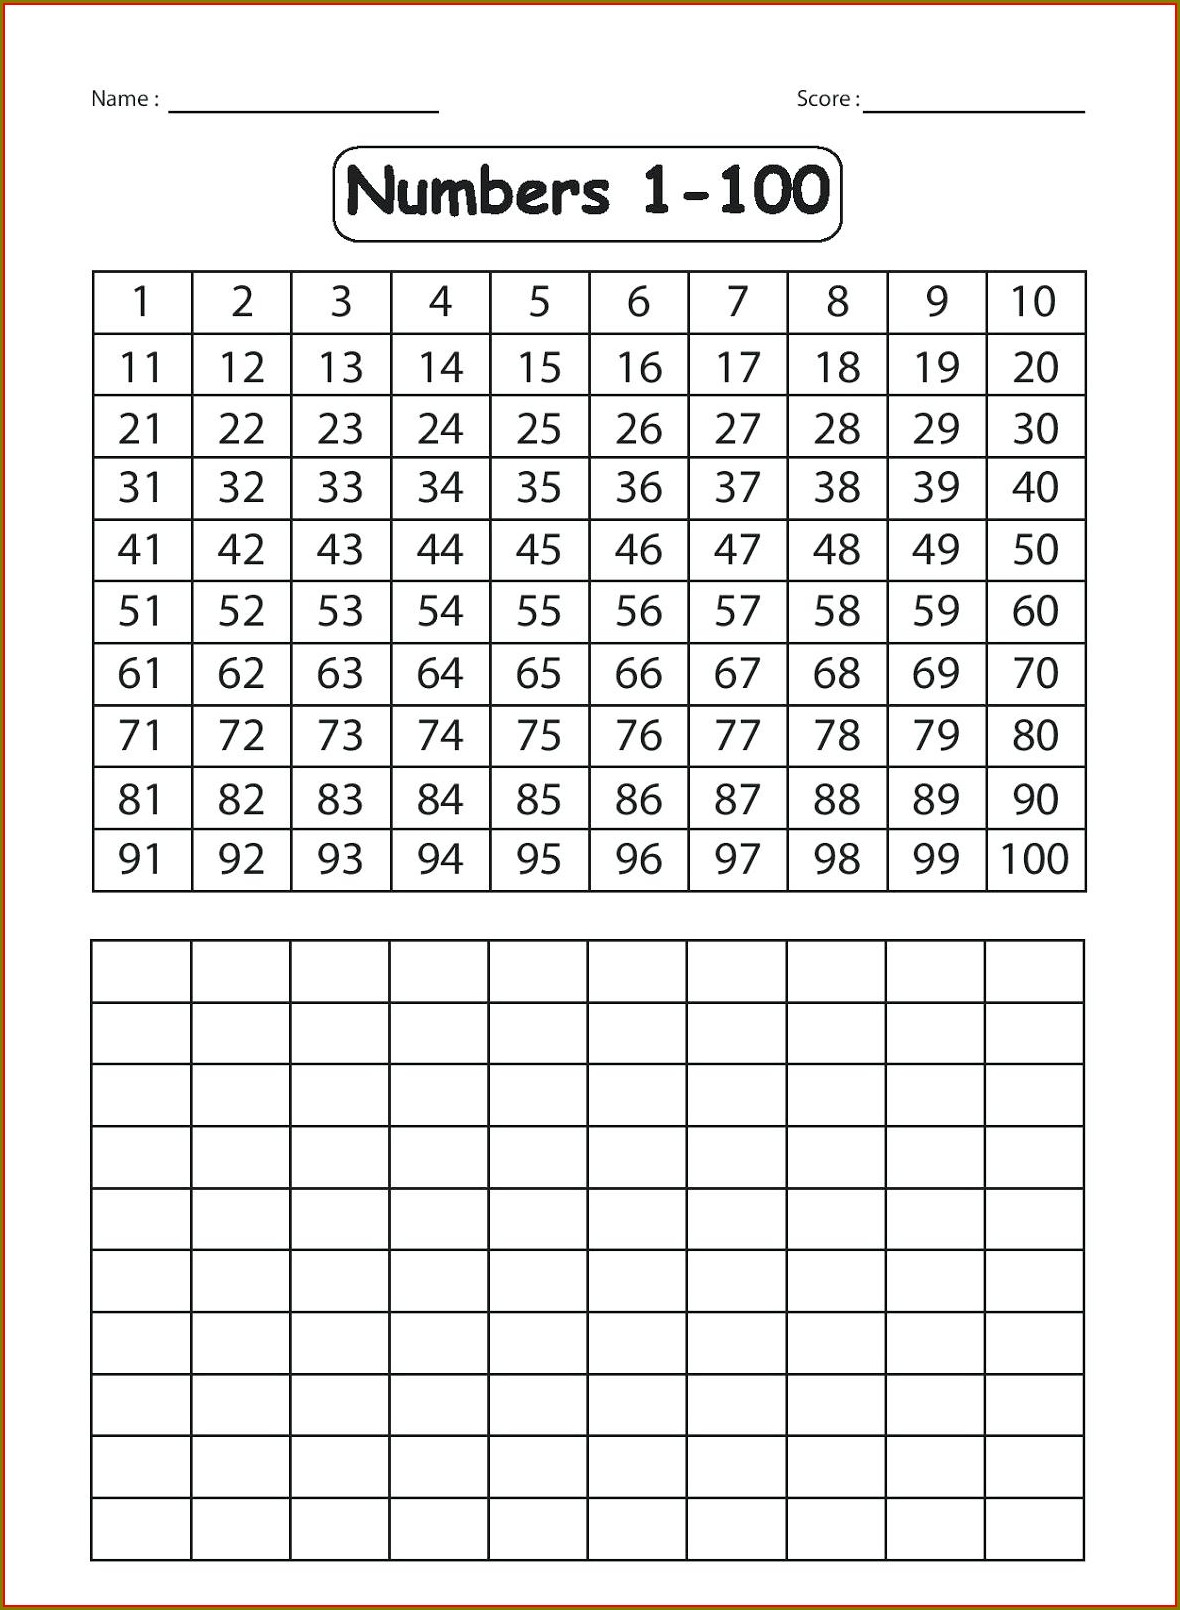 Ordinal Numbers 1 To 100 Worksheet